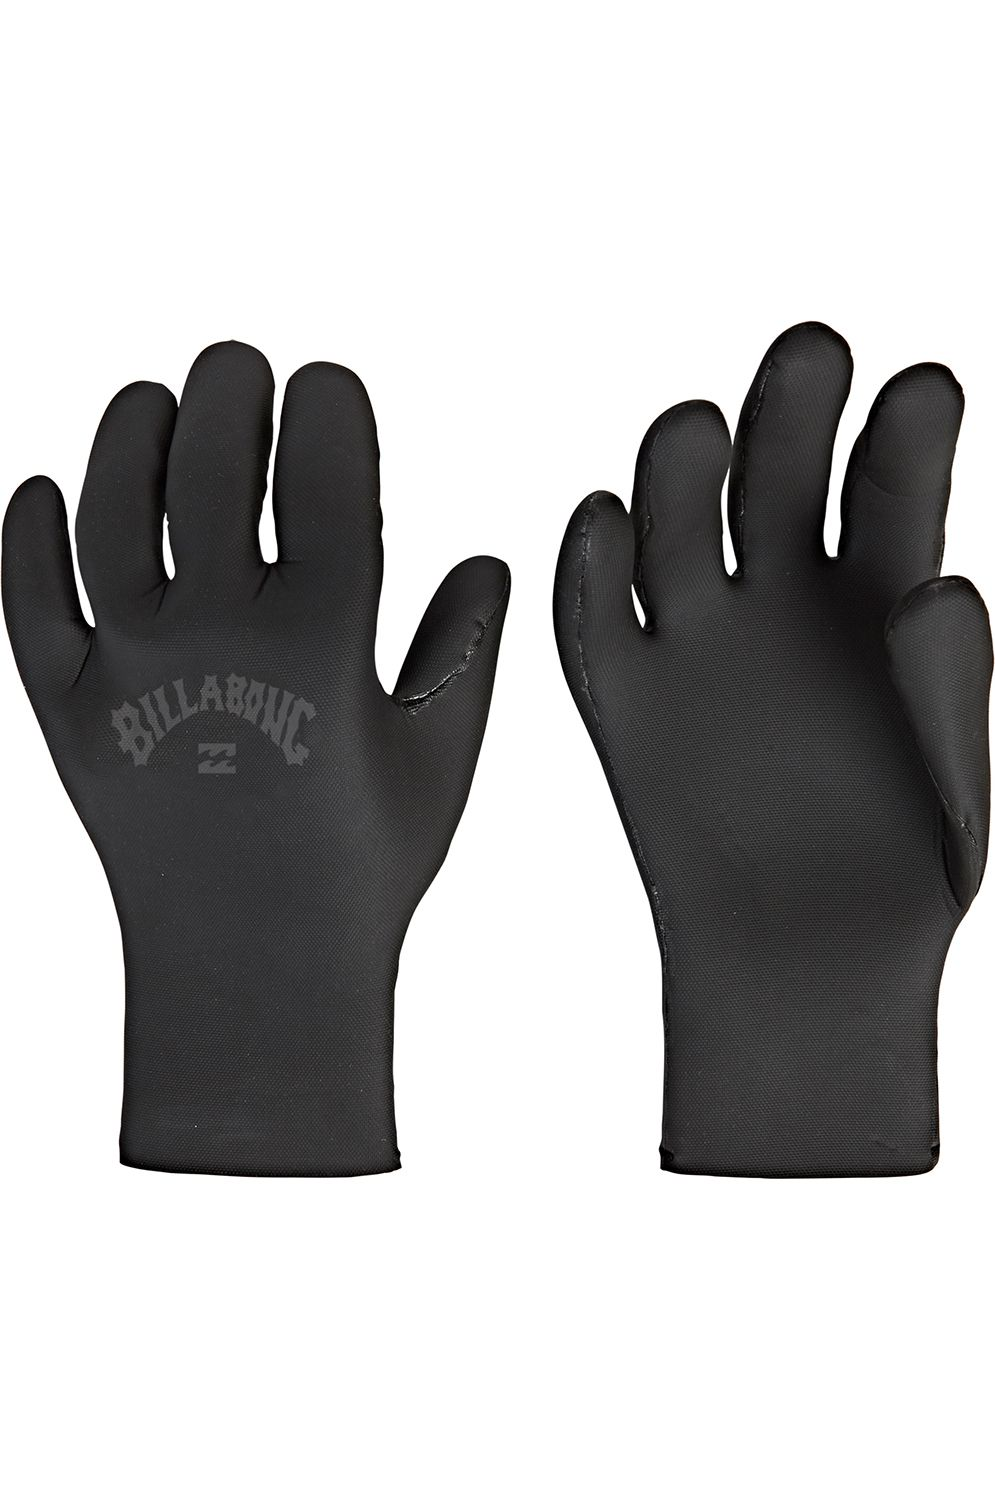 Billabong Neoprene Gloves 3mm ABSO 5 FINGER Black